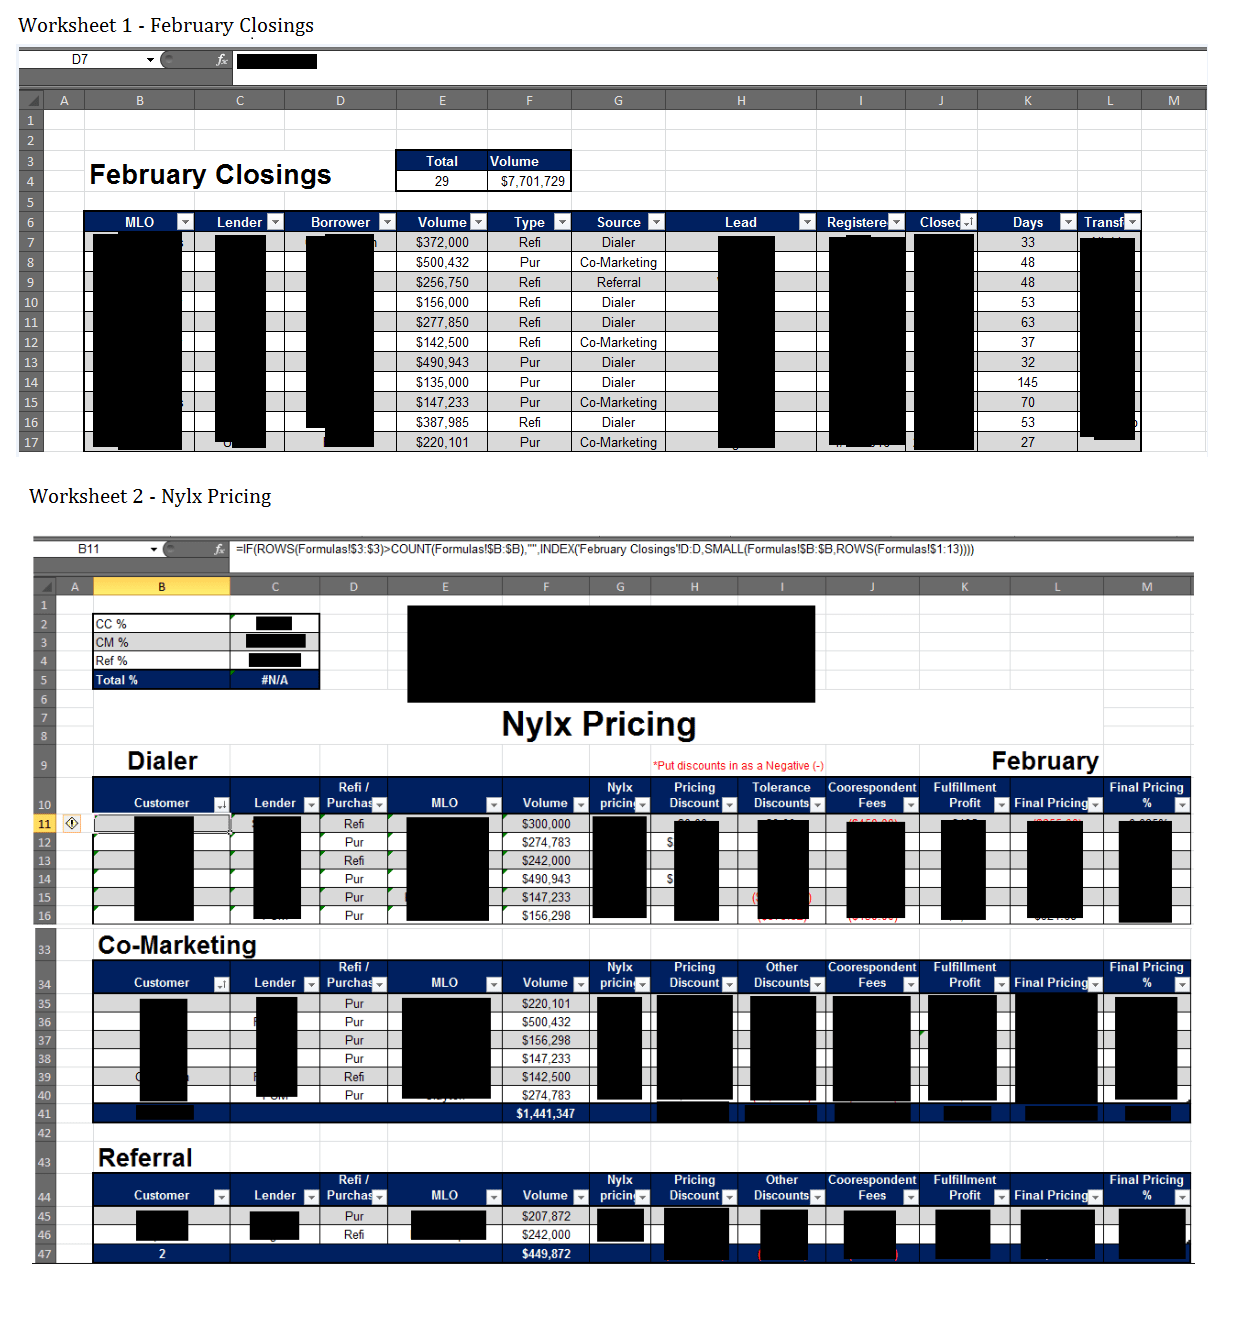 Copying Cell Based Off Criteria